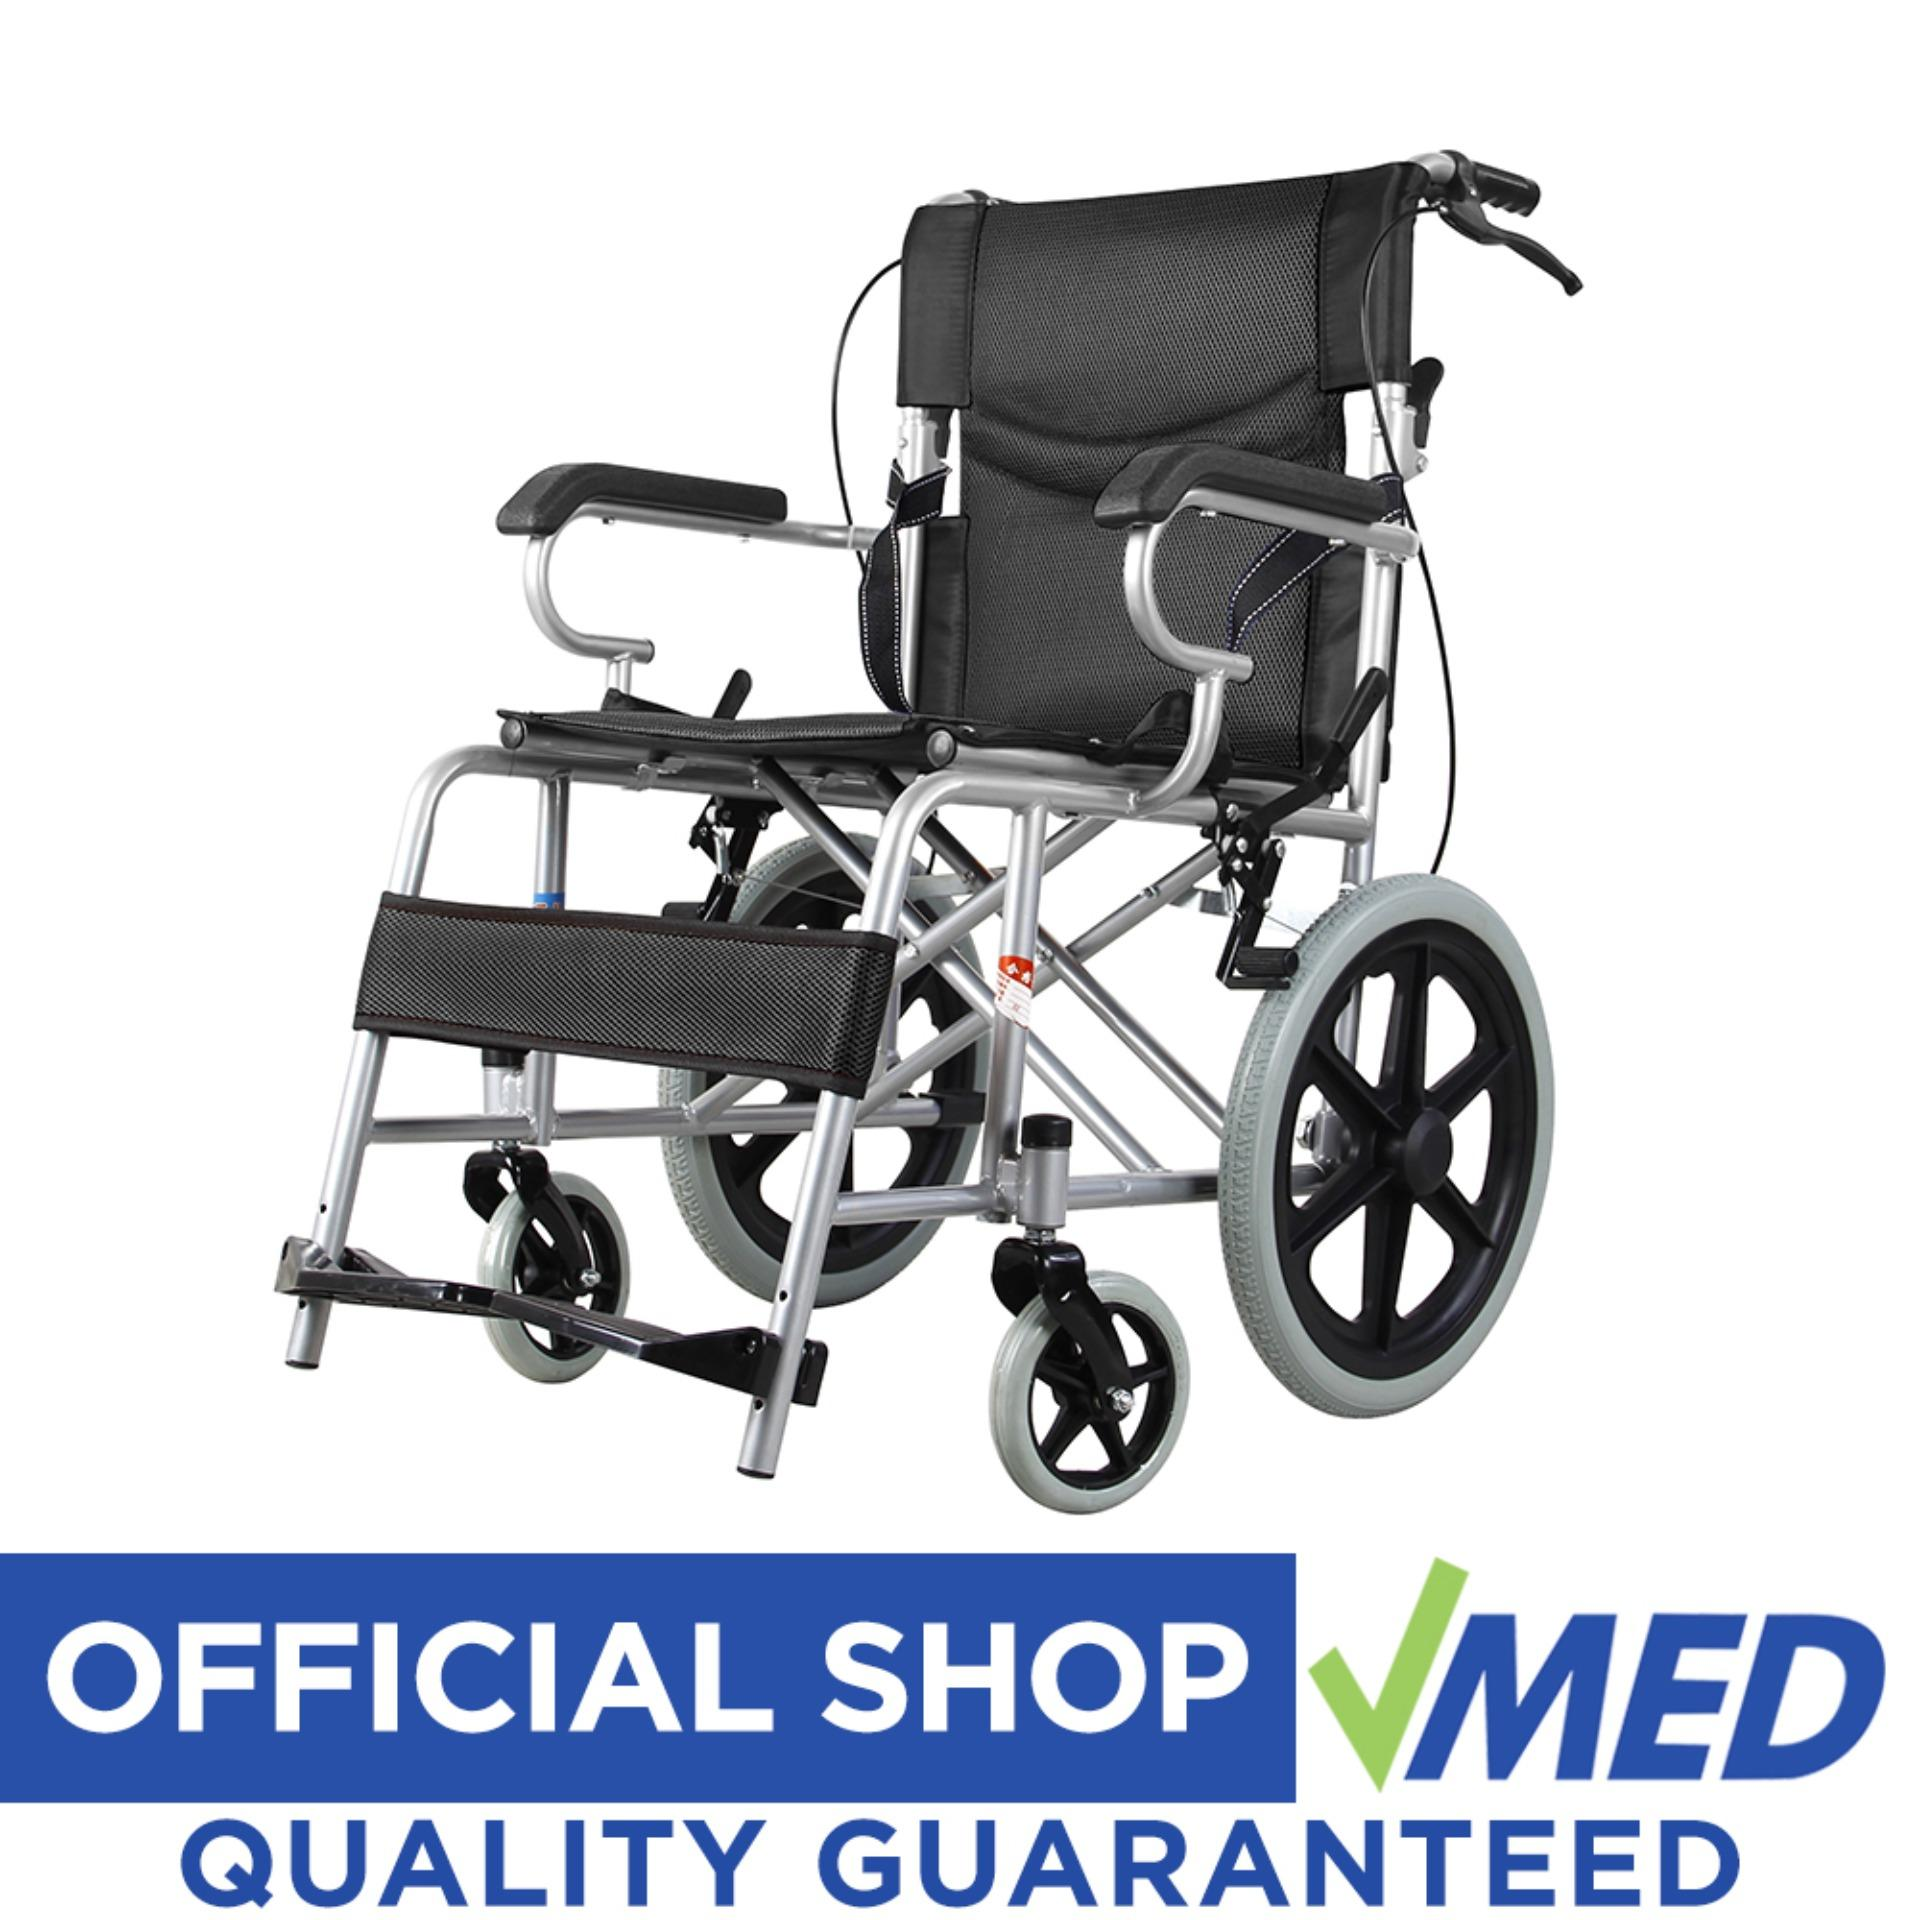 VMED Heavy Duty Lightweight Travel Wheelchair BLACK